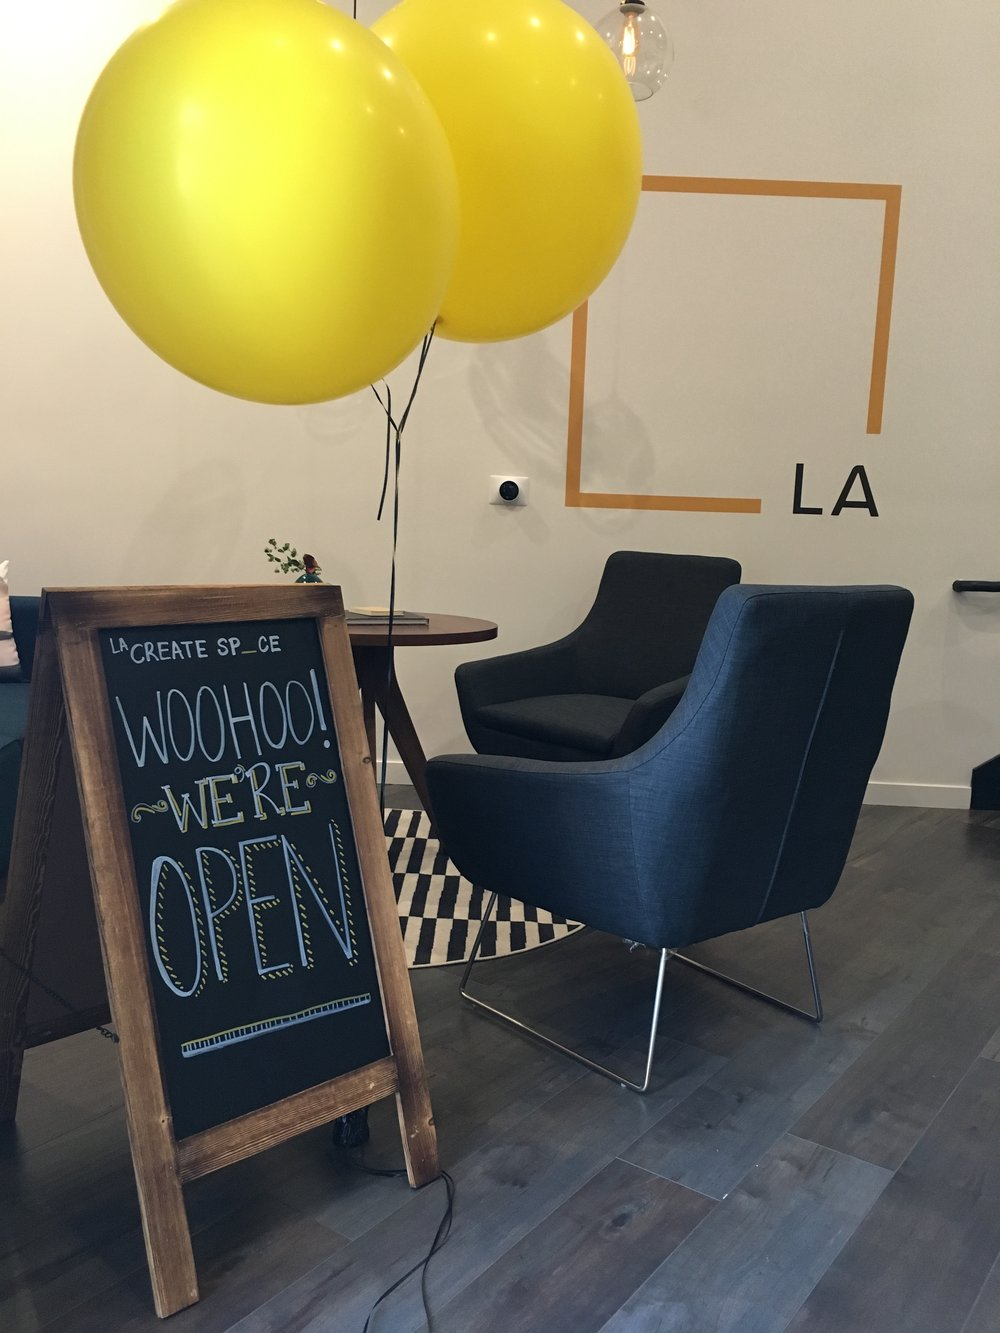 LA Create Space Grand Opening